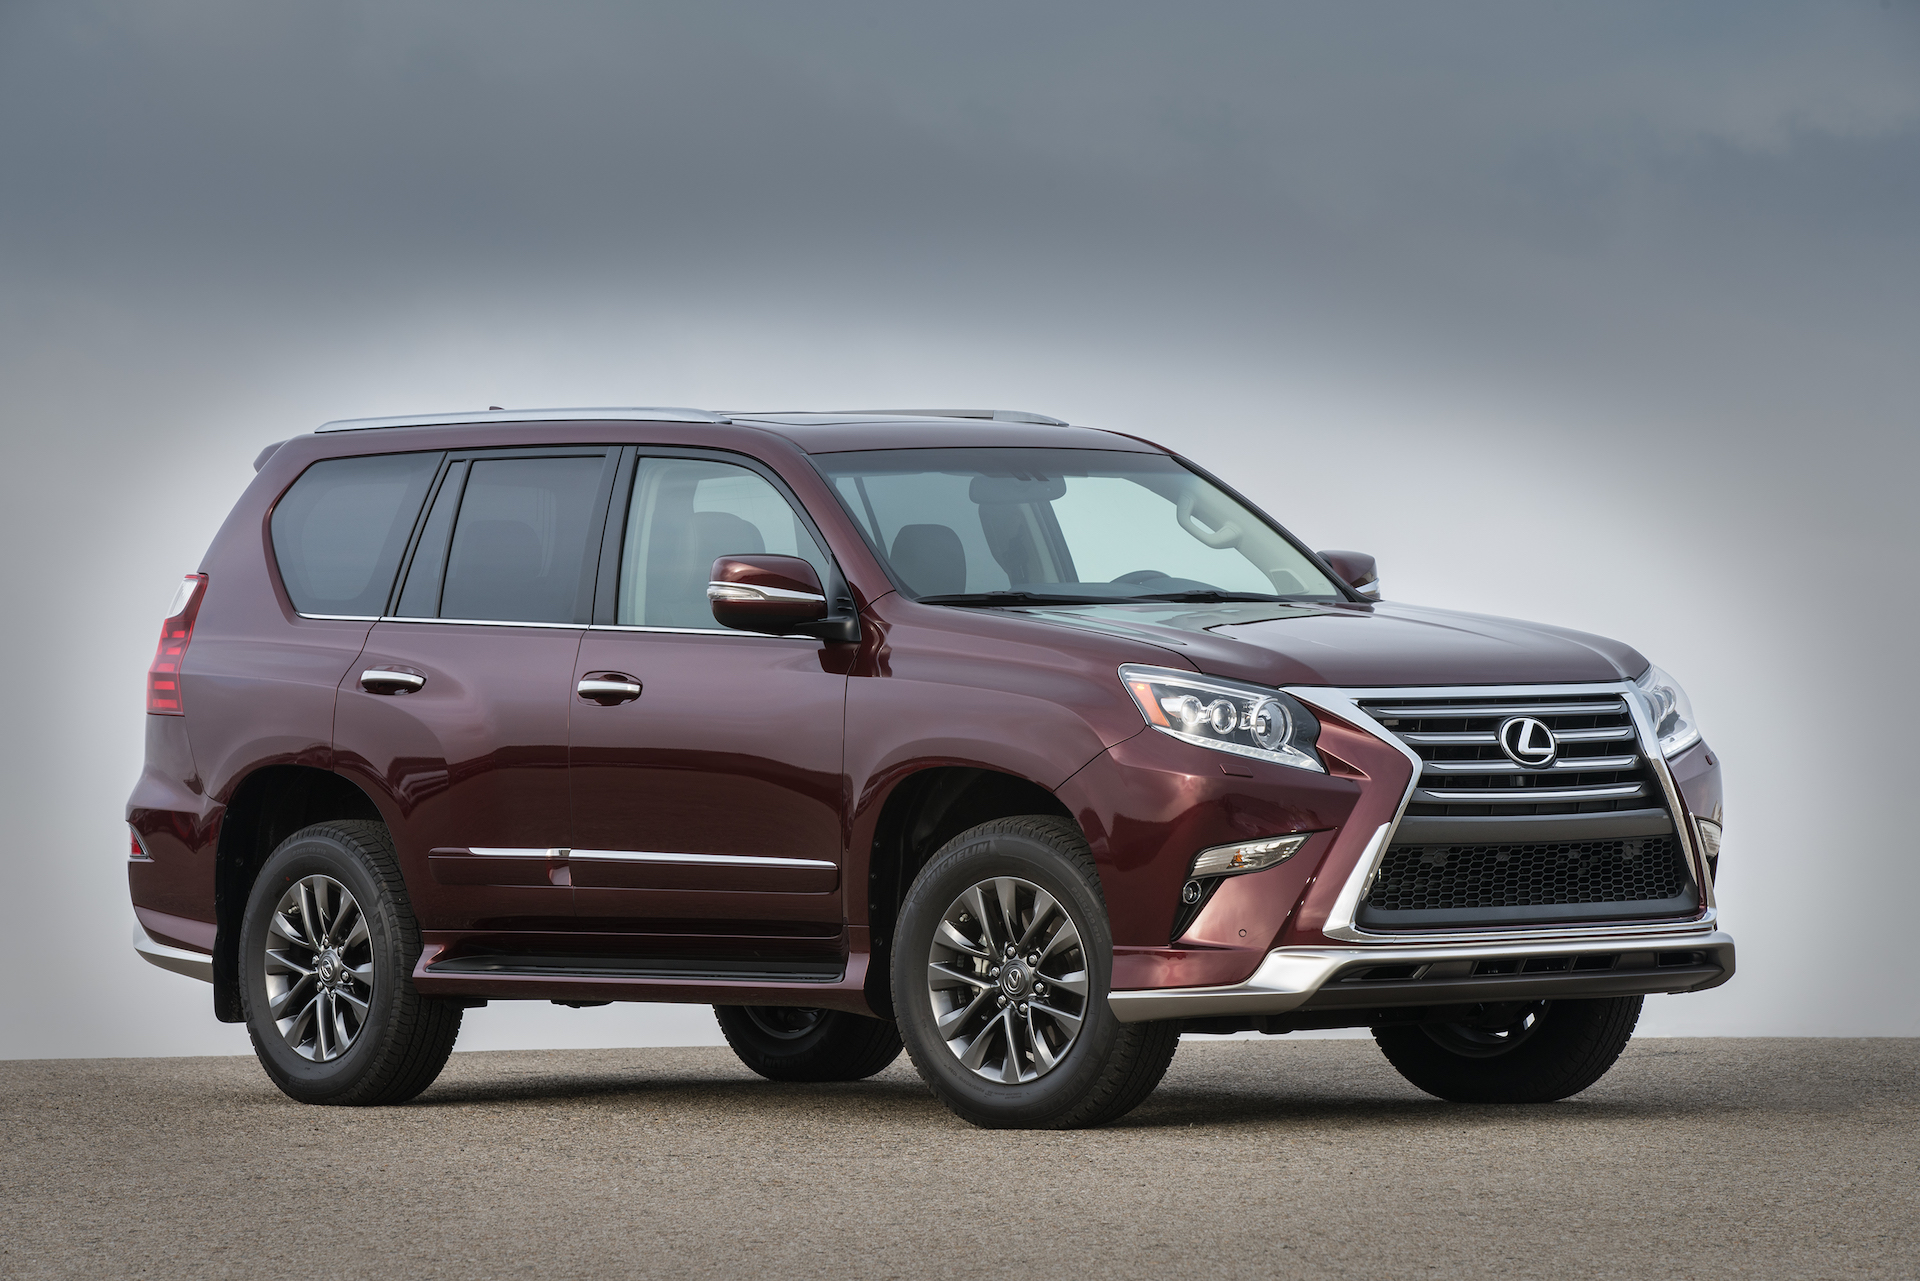 Cadillac El Paso >> 2018 Lexus GX Review, Ratings, Specs, Prices, and Photos - The Car Connection